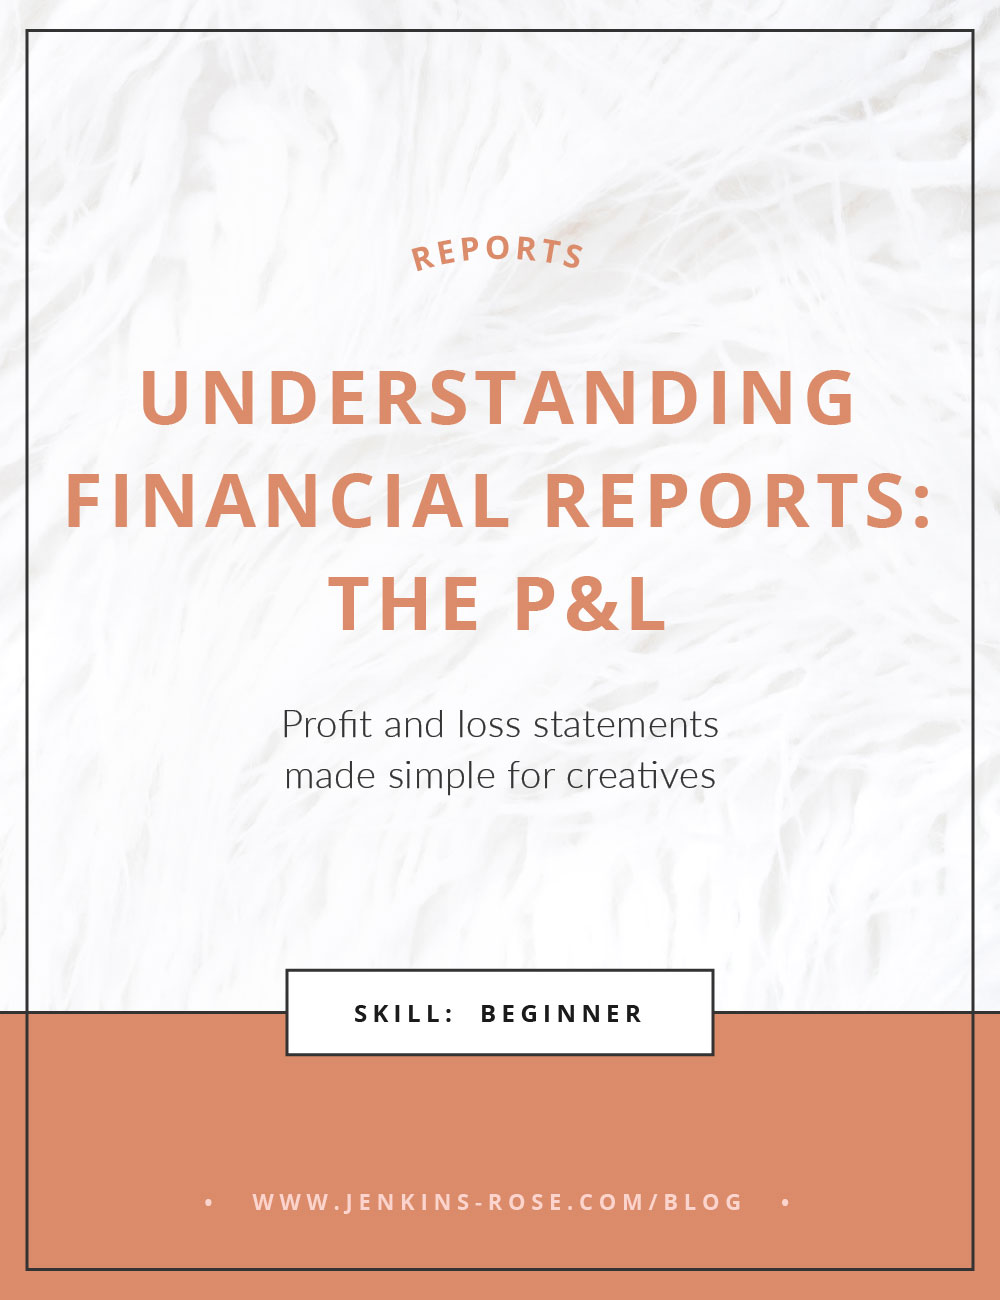 profit and loss statements made simple for creatives